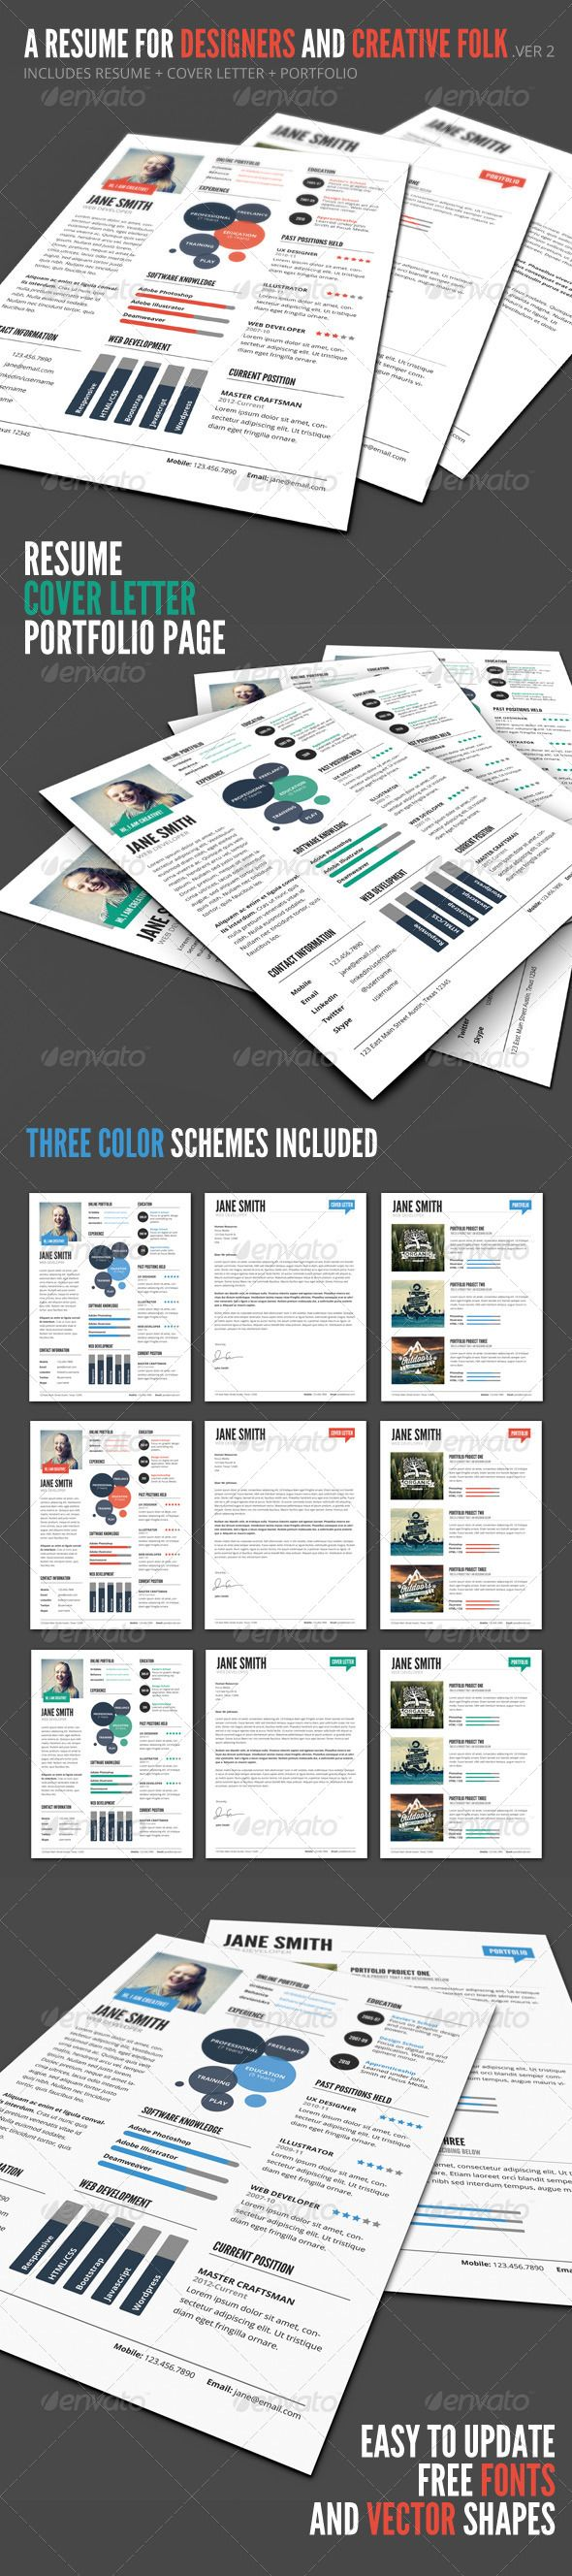 infographic style resume graphicume sample infographic